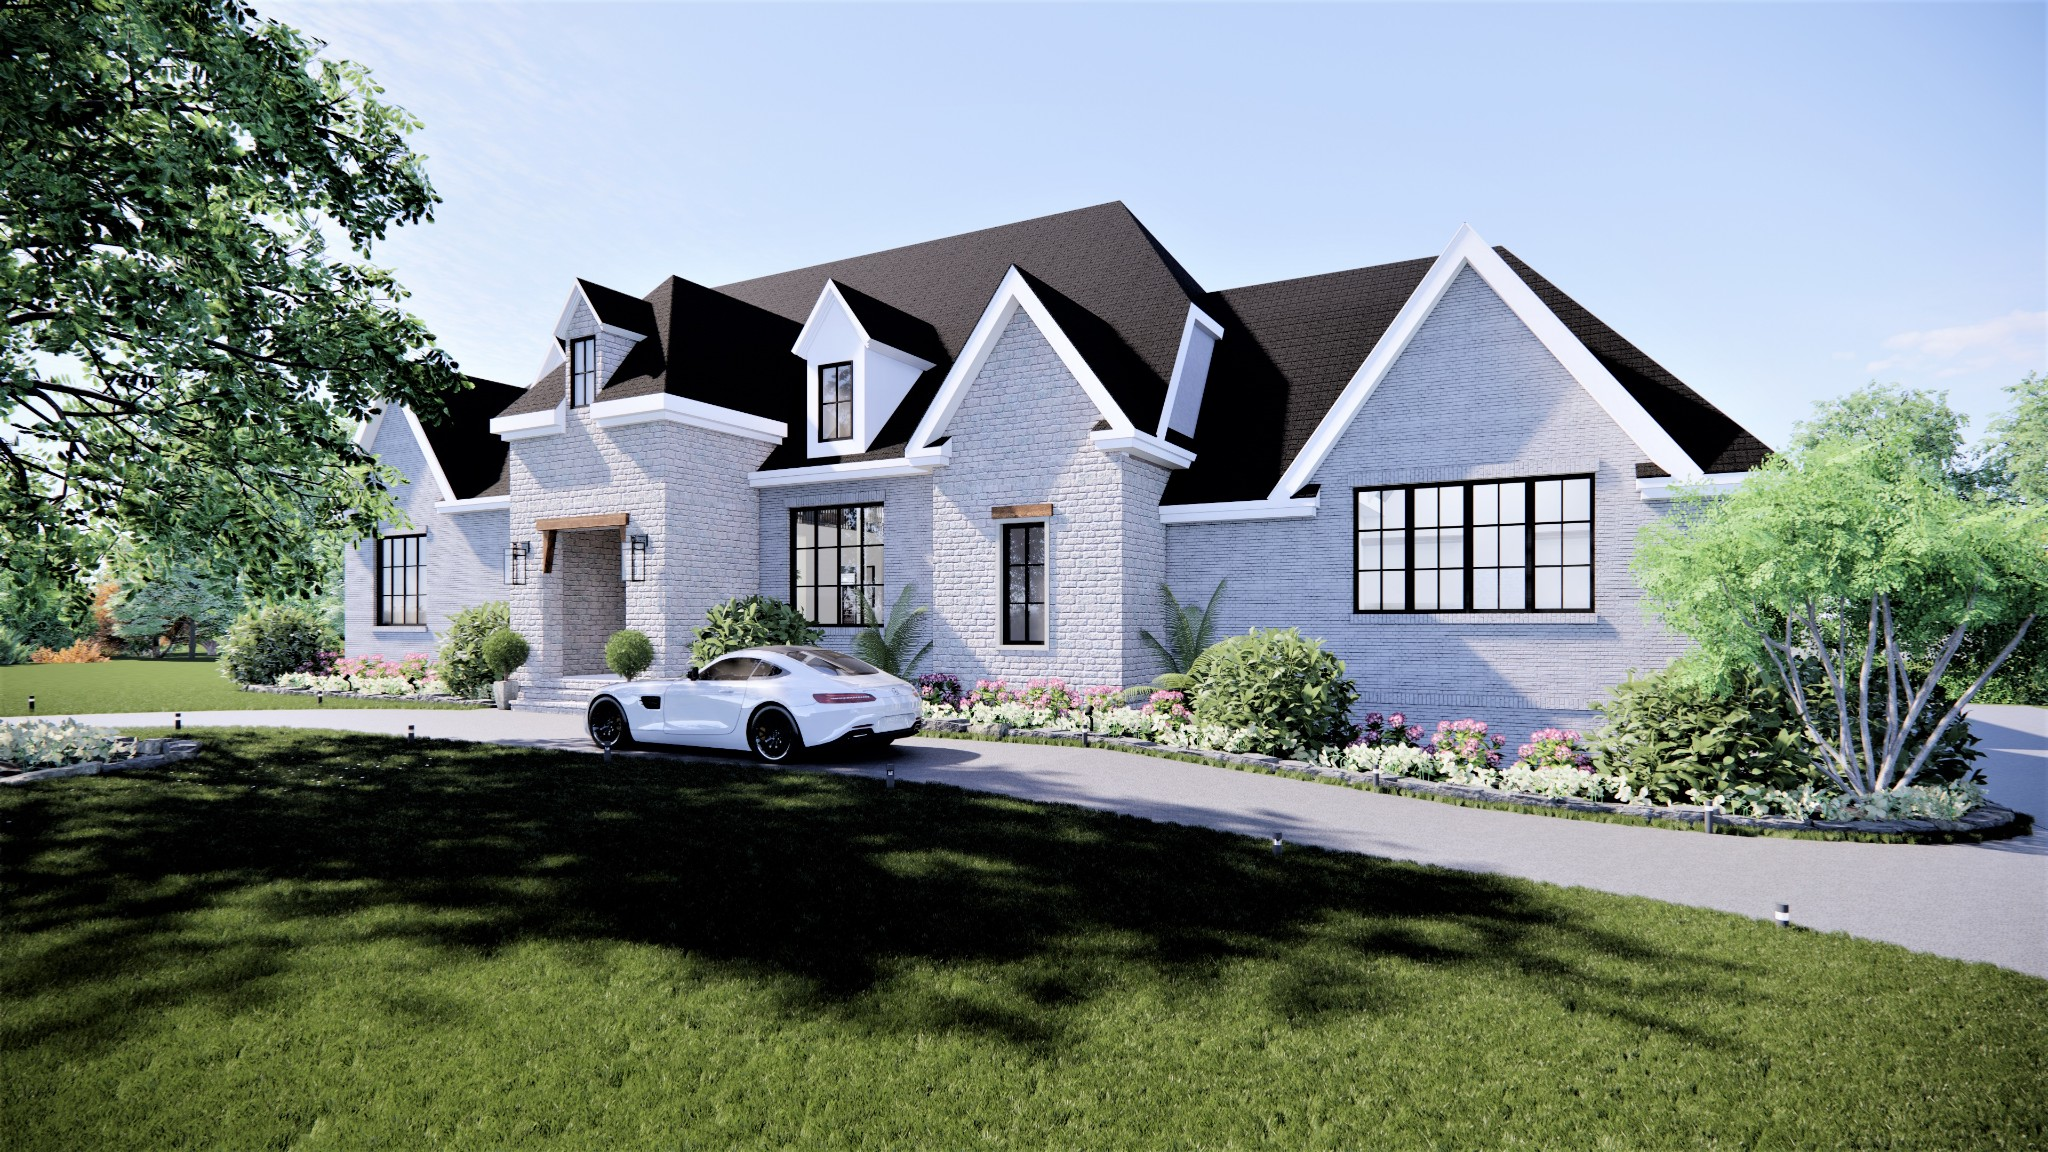 Brand new, full custom home in the heart of Brentwood. Meadow Lake Estates features 1 acre+ lots, amazing location and no HOA.  Open concept living opens out to the pool deck with cabana style outdoor BBQ area; chefs kitchen with walk-in pantry, oversized master suite w/ 2 walk-ins, fireplace, and glassed sun-room. In-law suite with separate entrance, 4 car garage, smart home features, full irrigation, landscape & outdoor lighting package. Completion date anticipated to be Feb. 15, 2021.